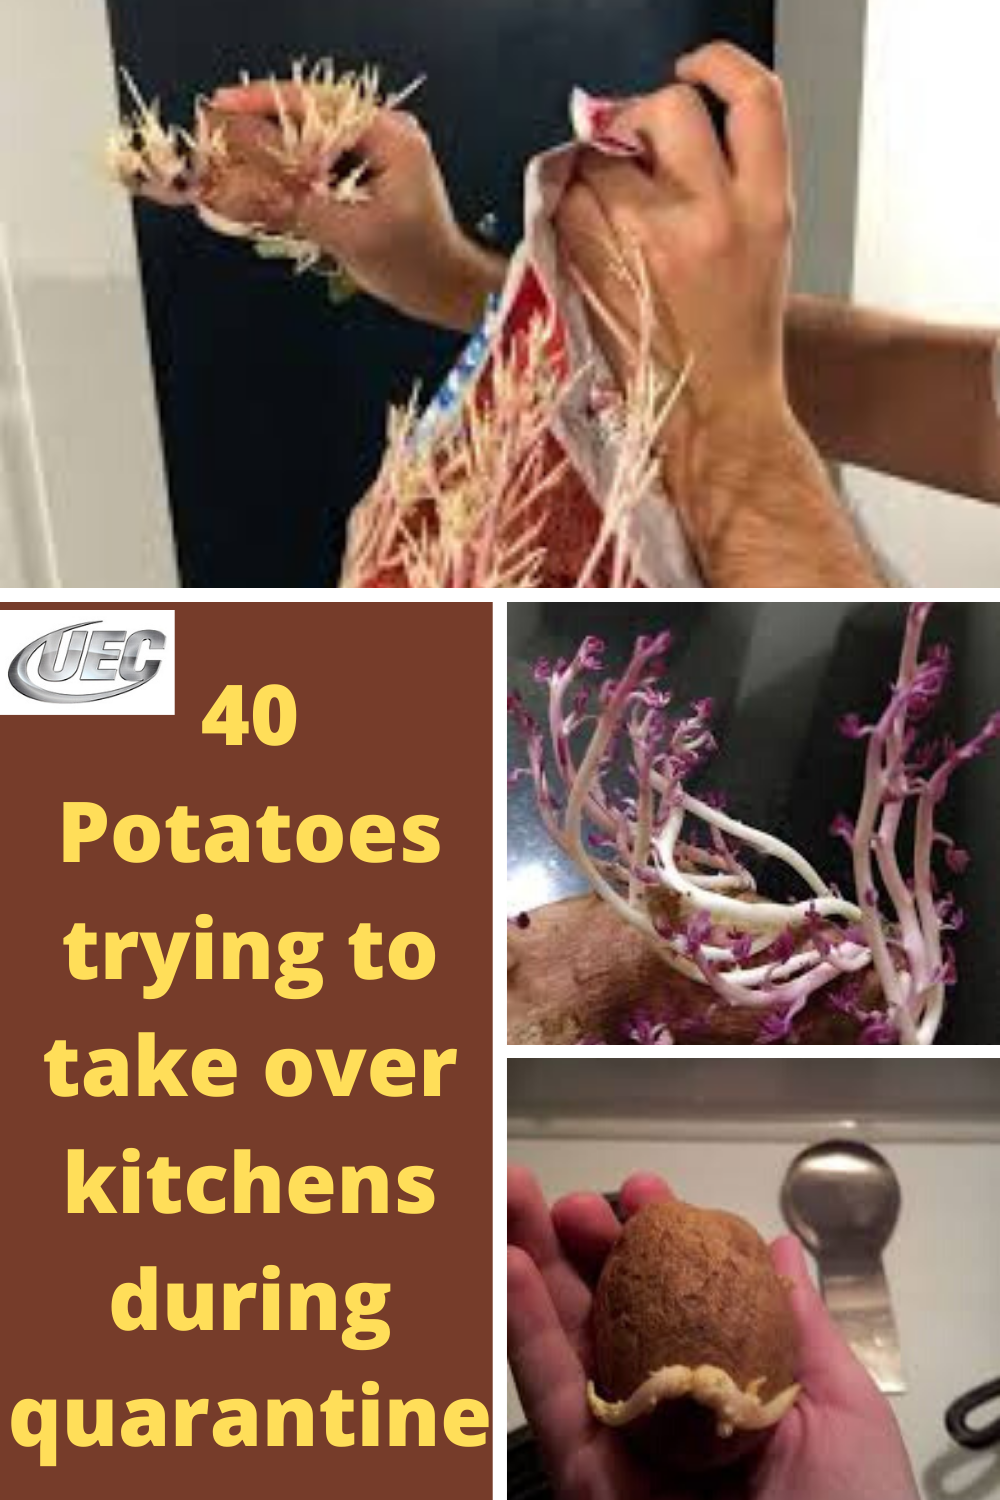 According to experts, the potato is the second-most consumed food in the US. Just imagine, the average person eats 135 pounds of this vegetable every year.